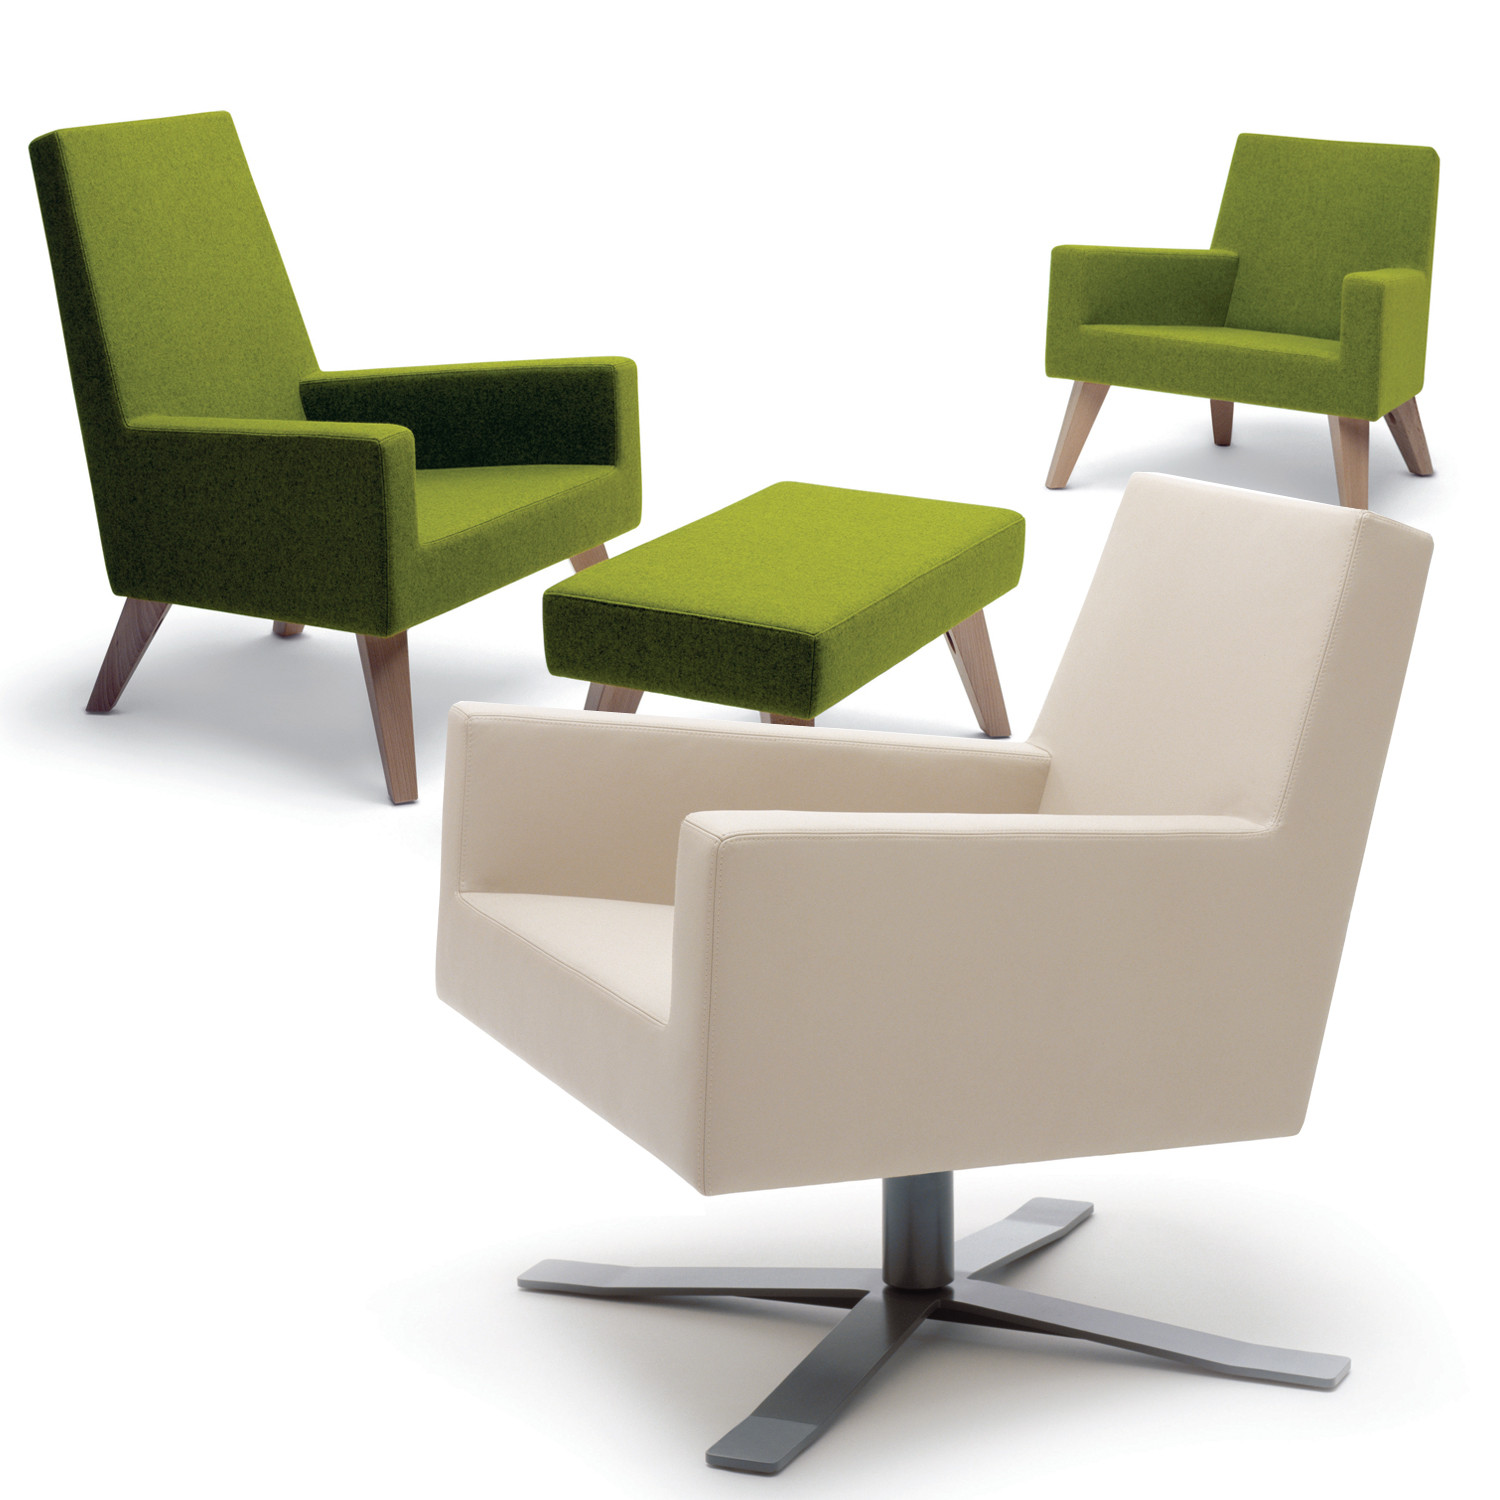 HM44 Reception Seating Range and Footstool